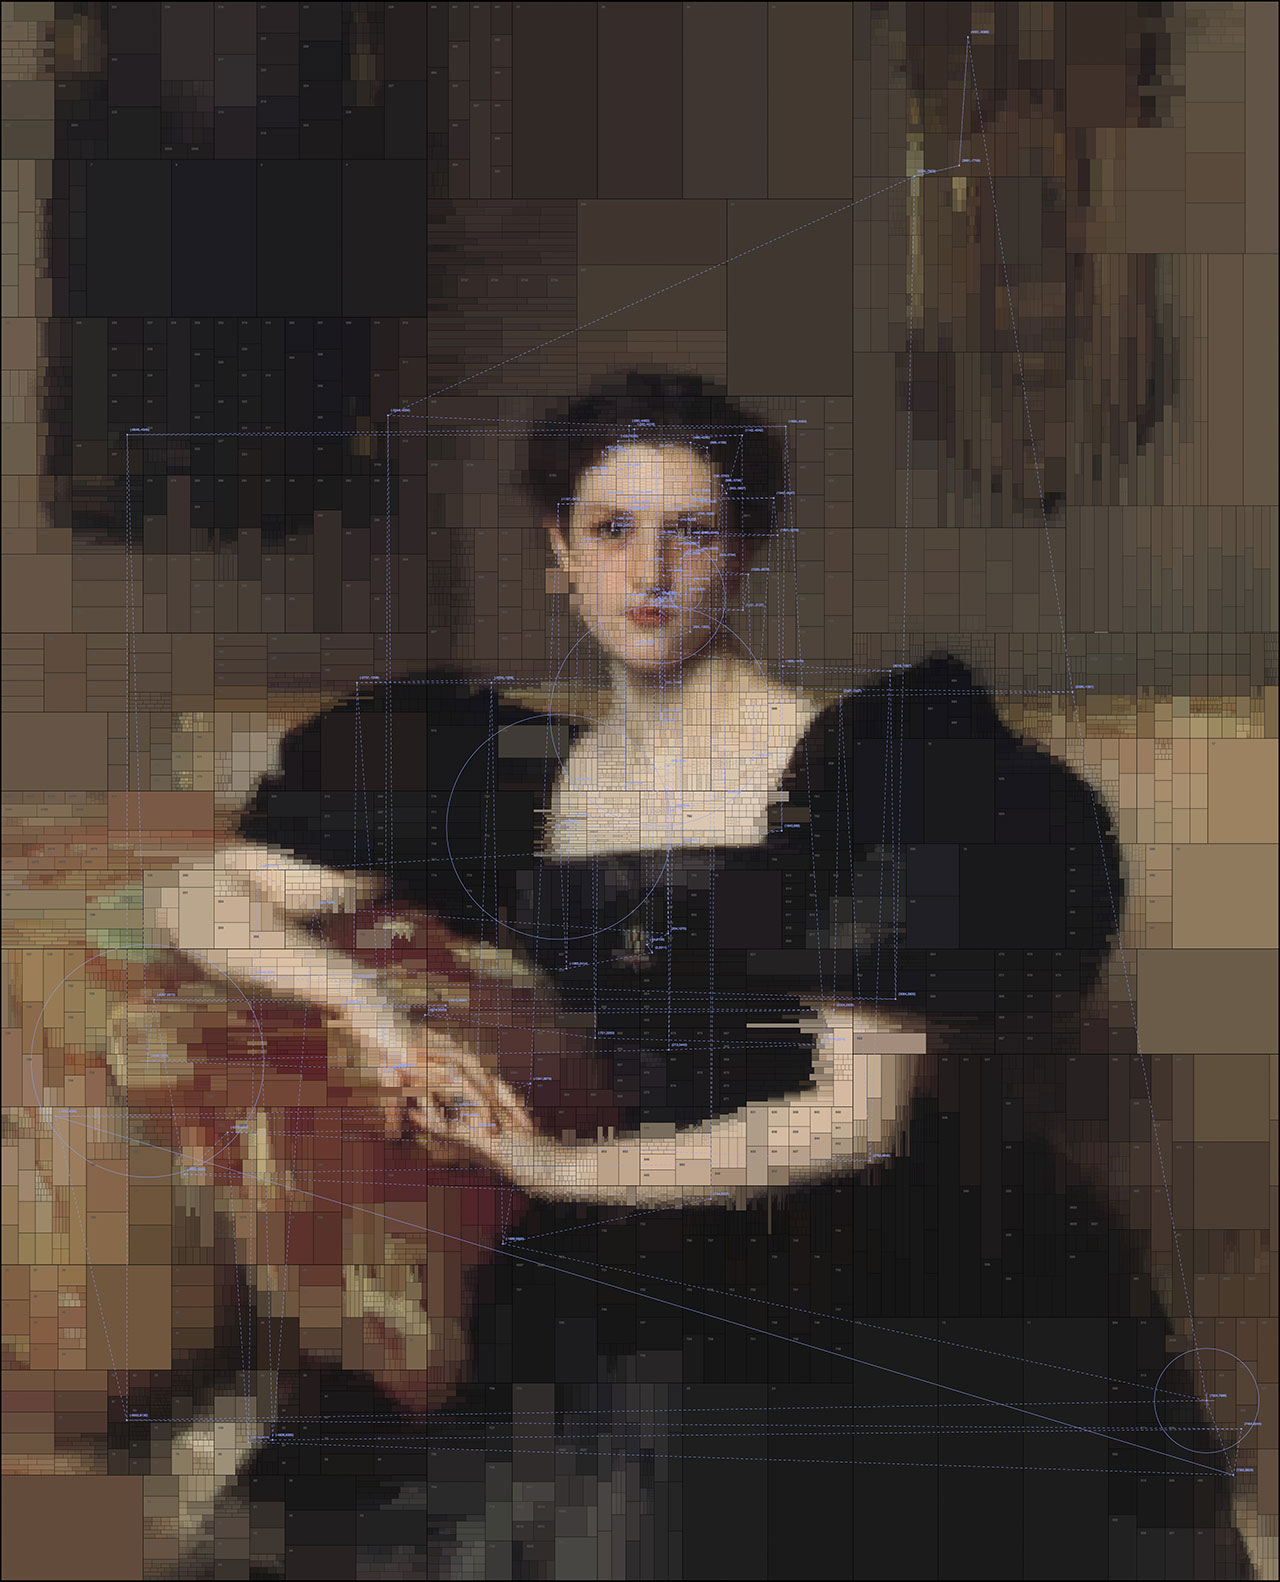 Elizabeth Winthrop Chanler, from Portraits series by Dimitris Ladopoulos (Original painting by John Singer Sargent,1893).